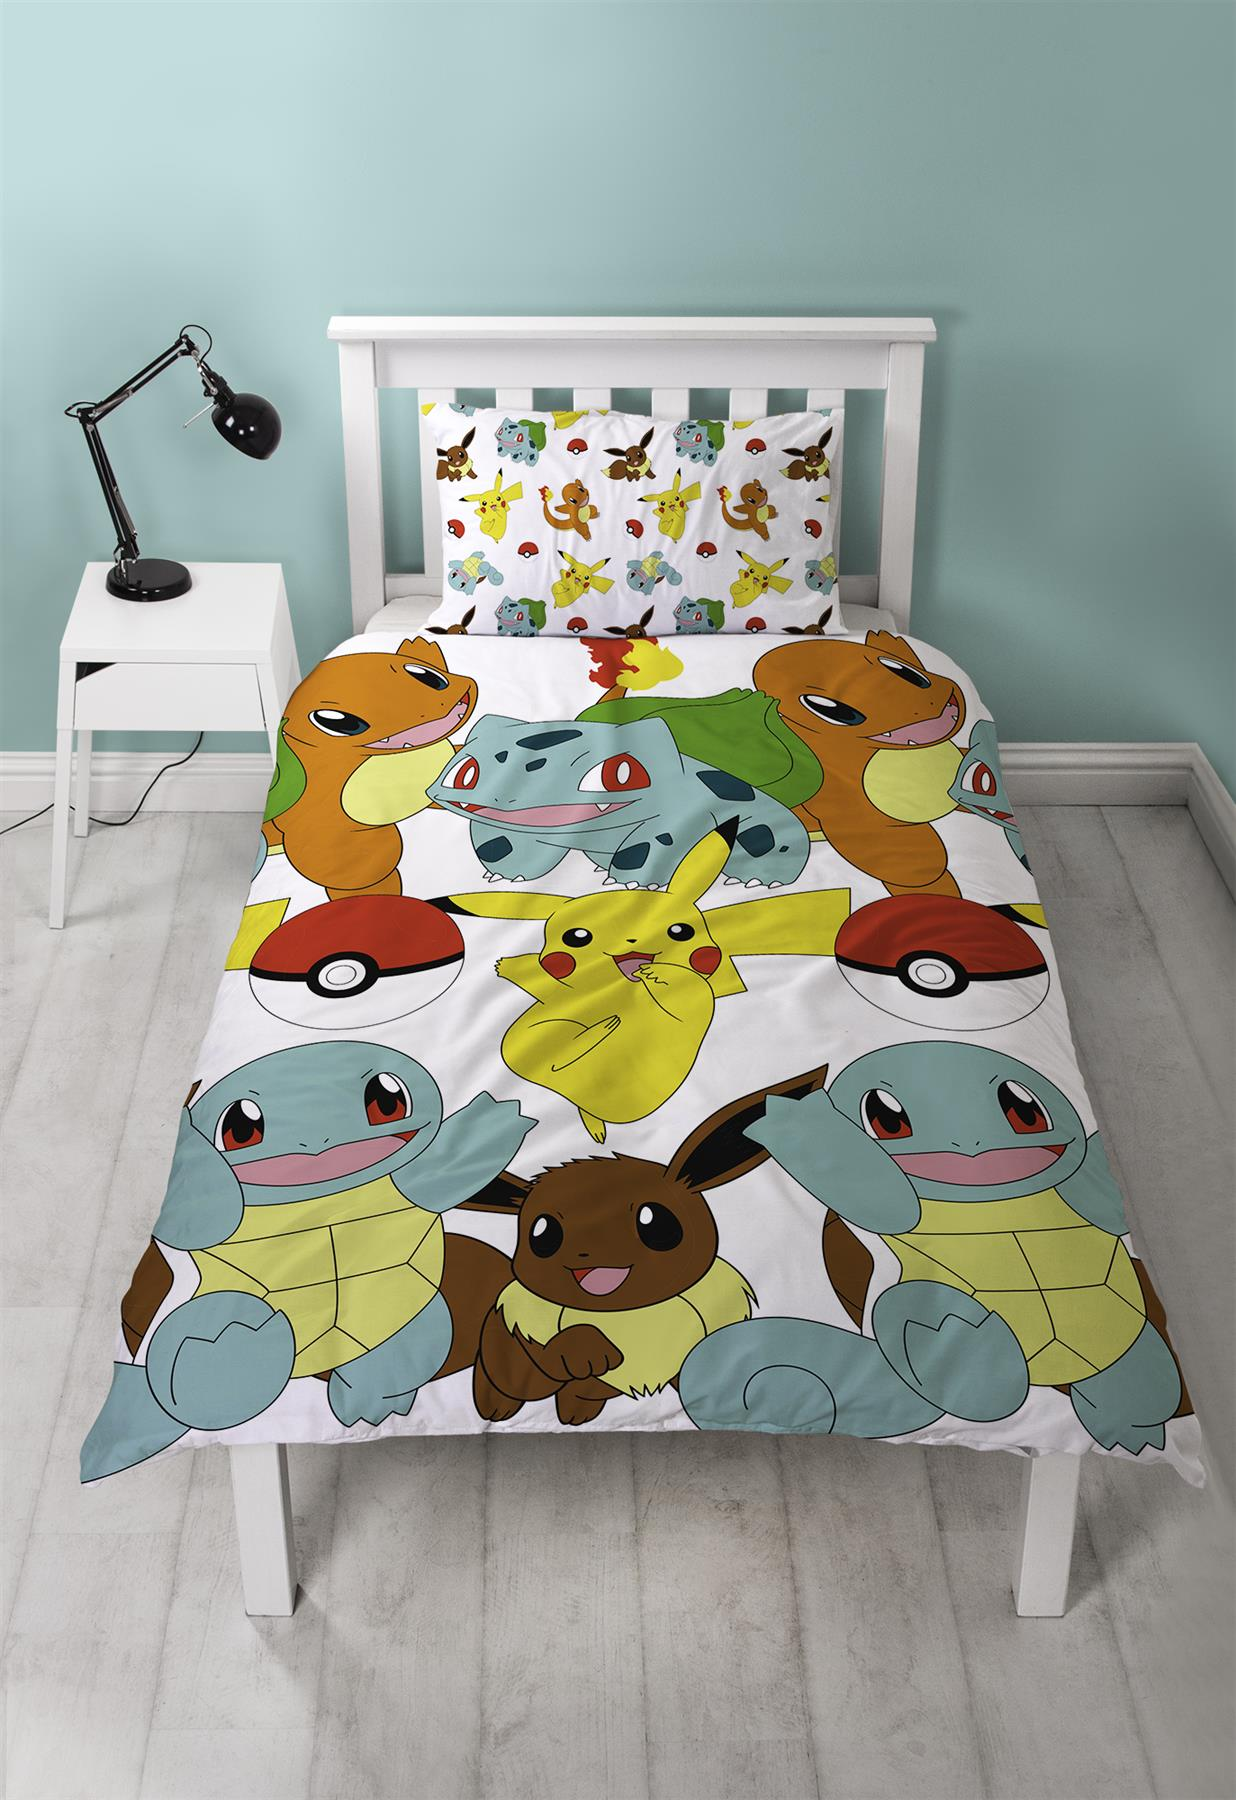 Official-Pokemon-Licensed-Duvet-Covers-Single-Double-Pikachu-Bedding-Gaming thumbnail 31